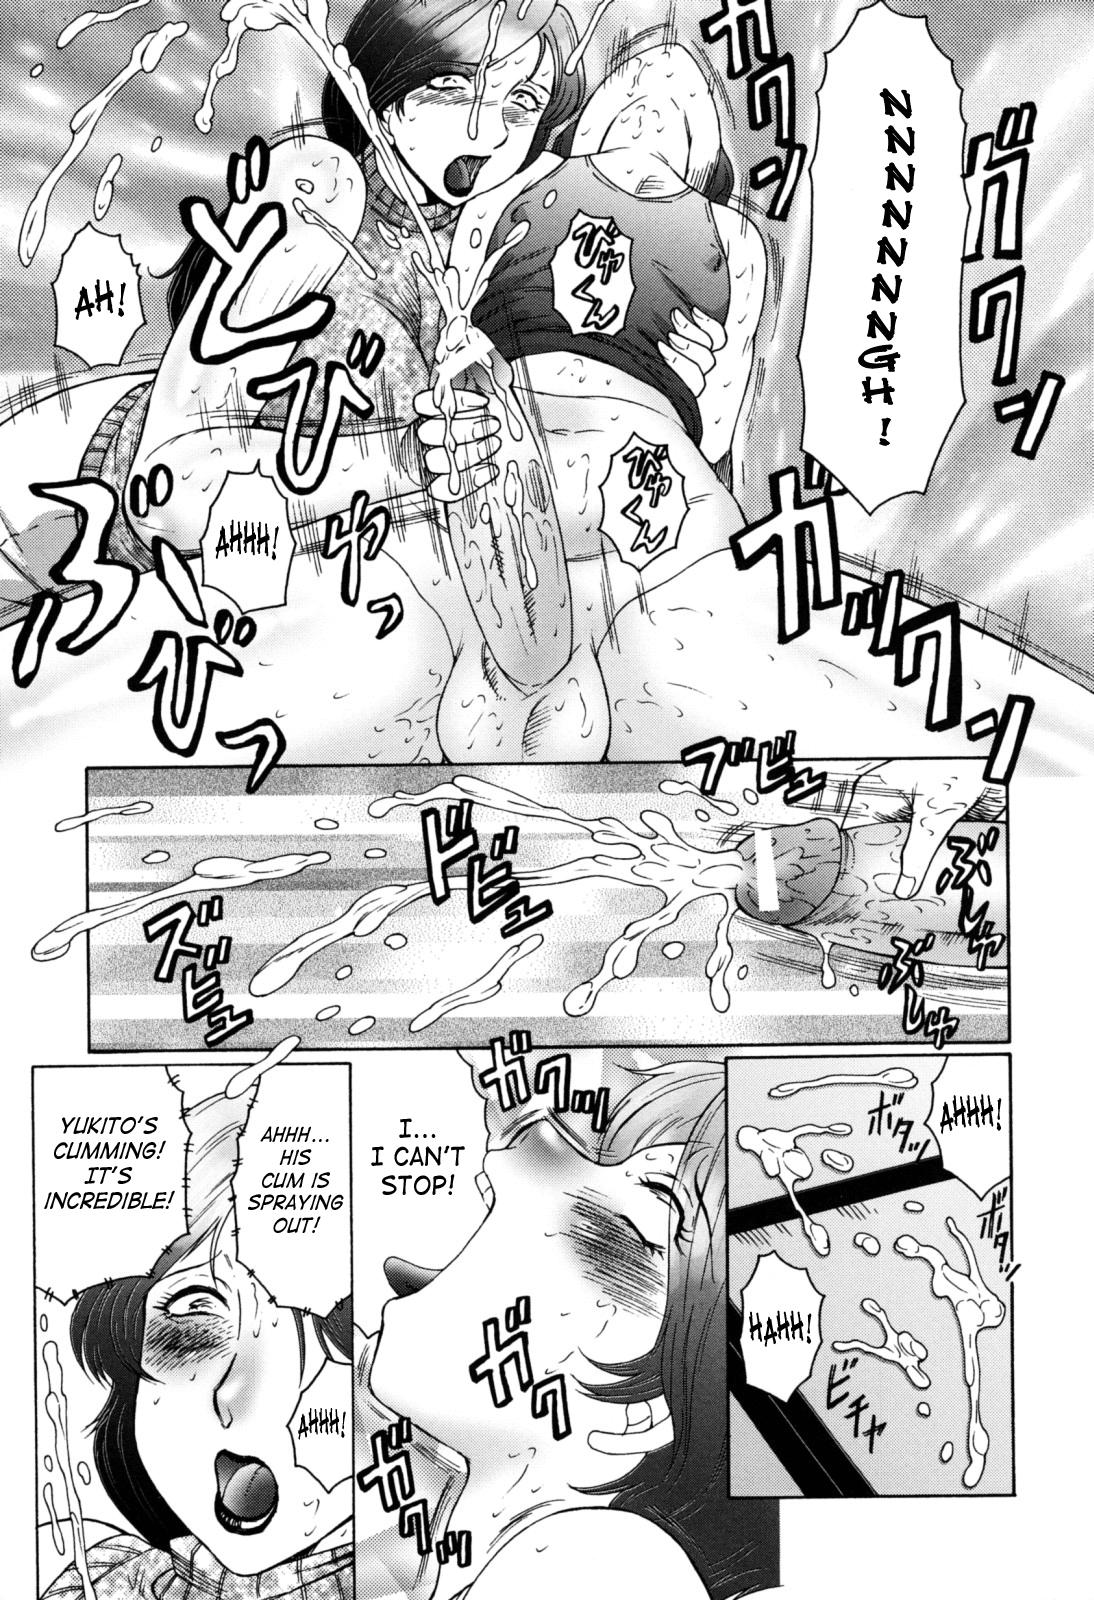 [Fuusen Club] Boshino Toriko - The Captive of Mother and the Son | Enslaved Mother and Son Ch. 1-5 [English] [SaHa] 26